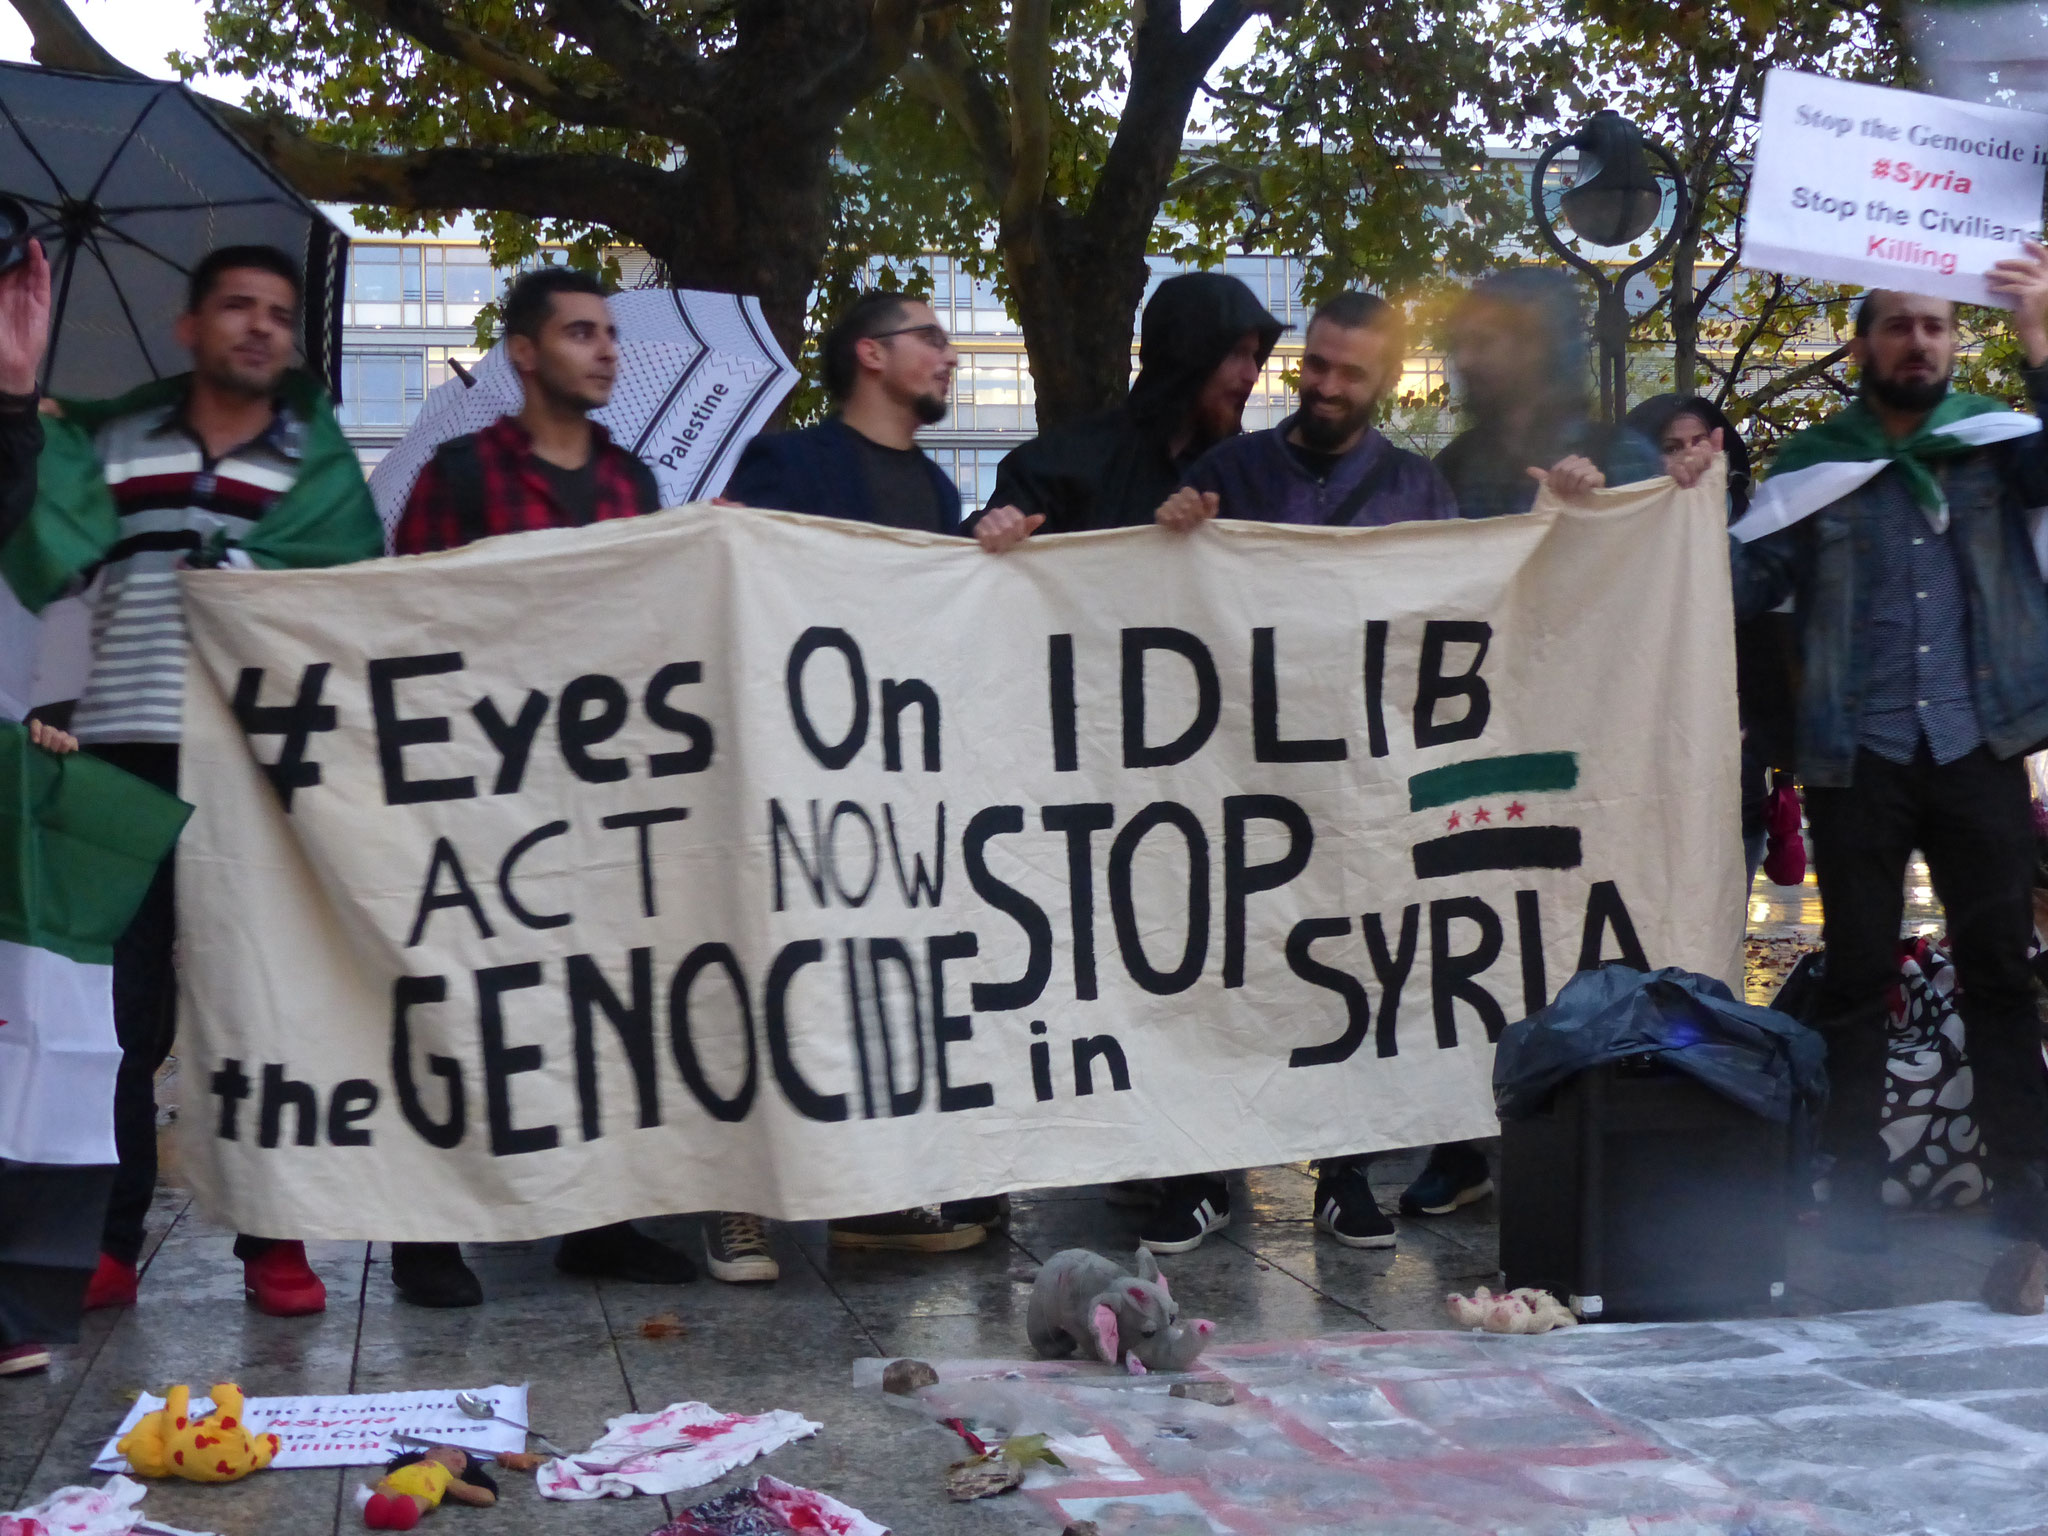 #EyesOnIdlib: Stop the genocide in Syria! - Photo: Jens-Martin Rode